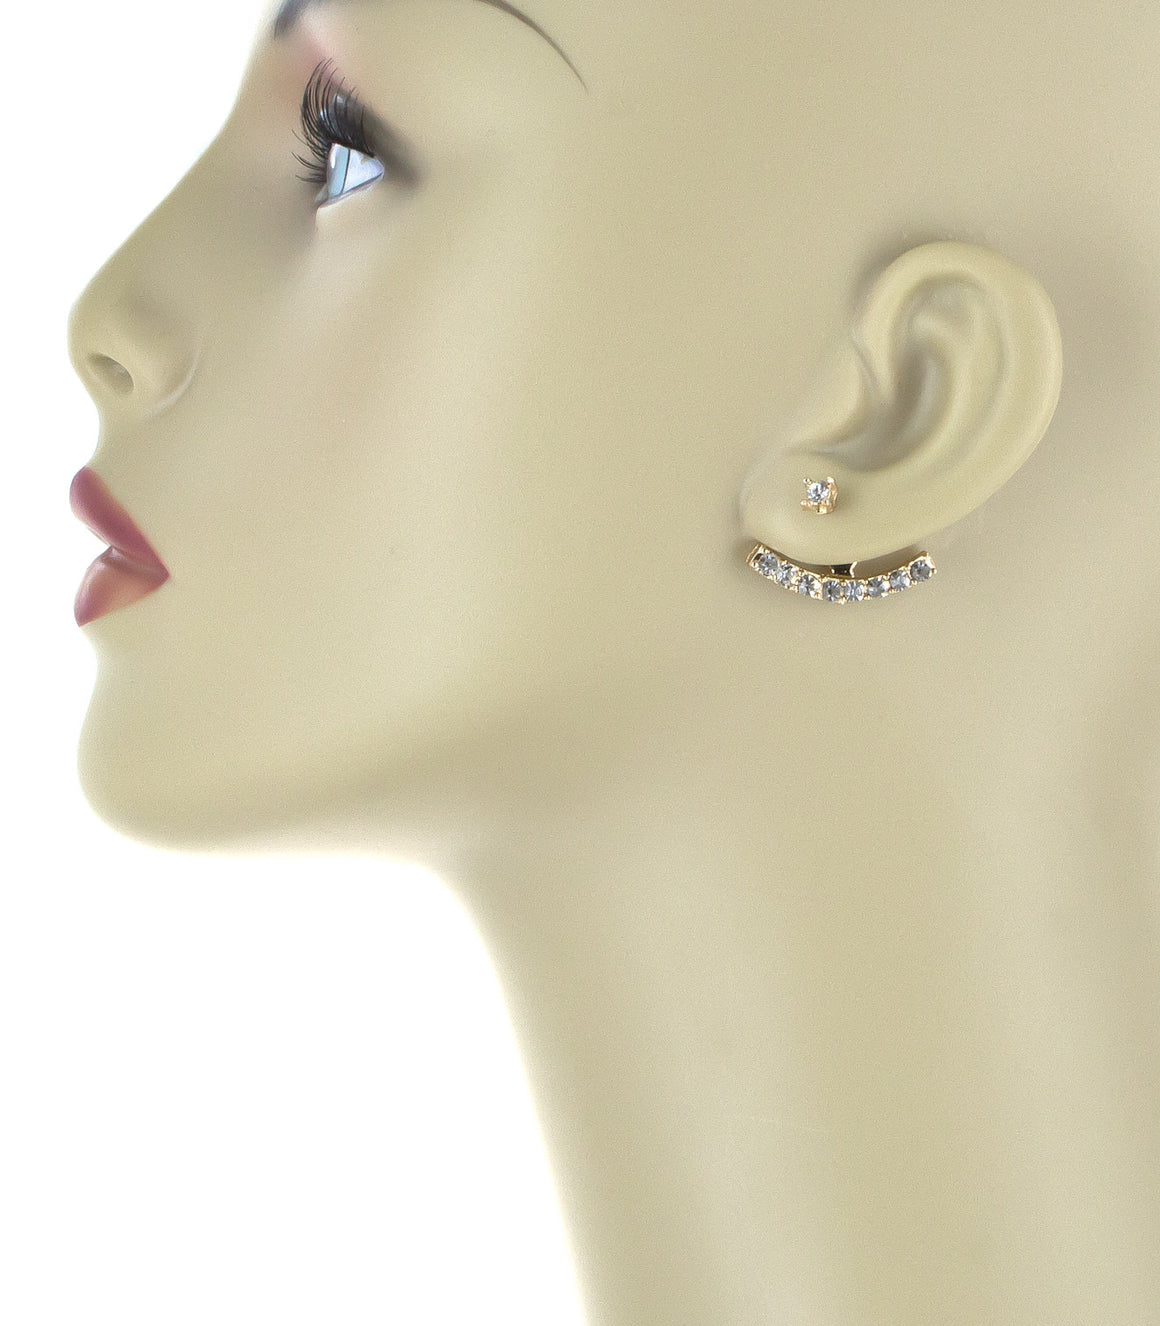 Curved bar peek-a-boo Stud Earrings jackets